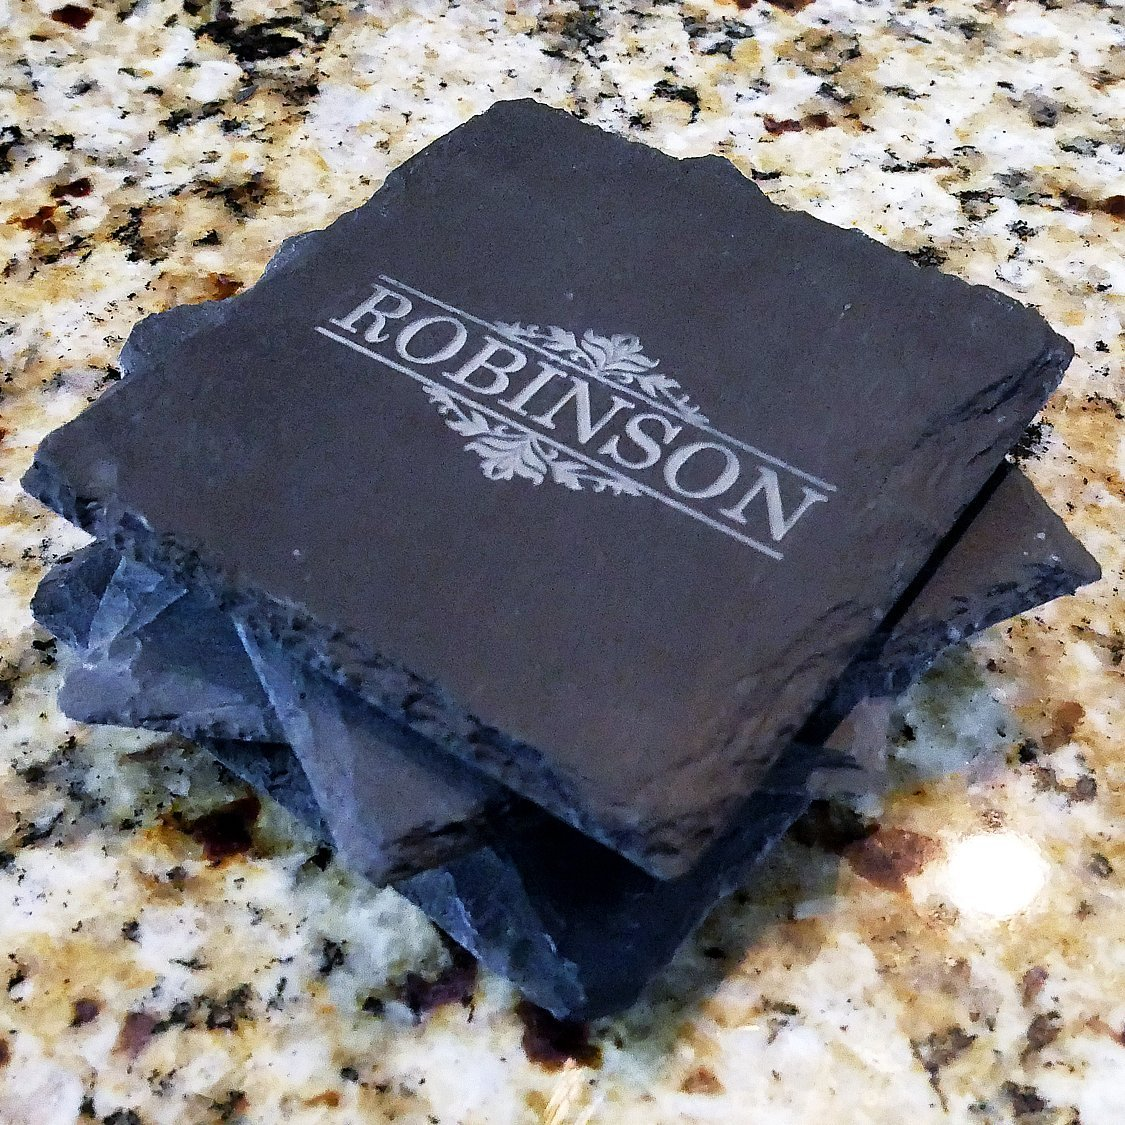 Dots Monogram Engraved Slate Coaster Set